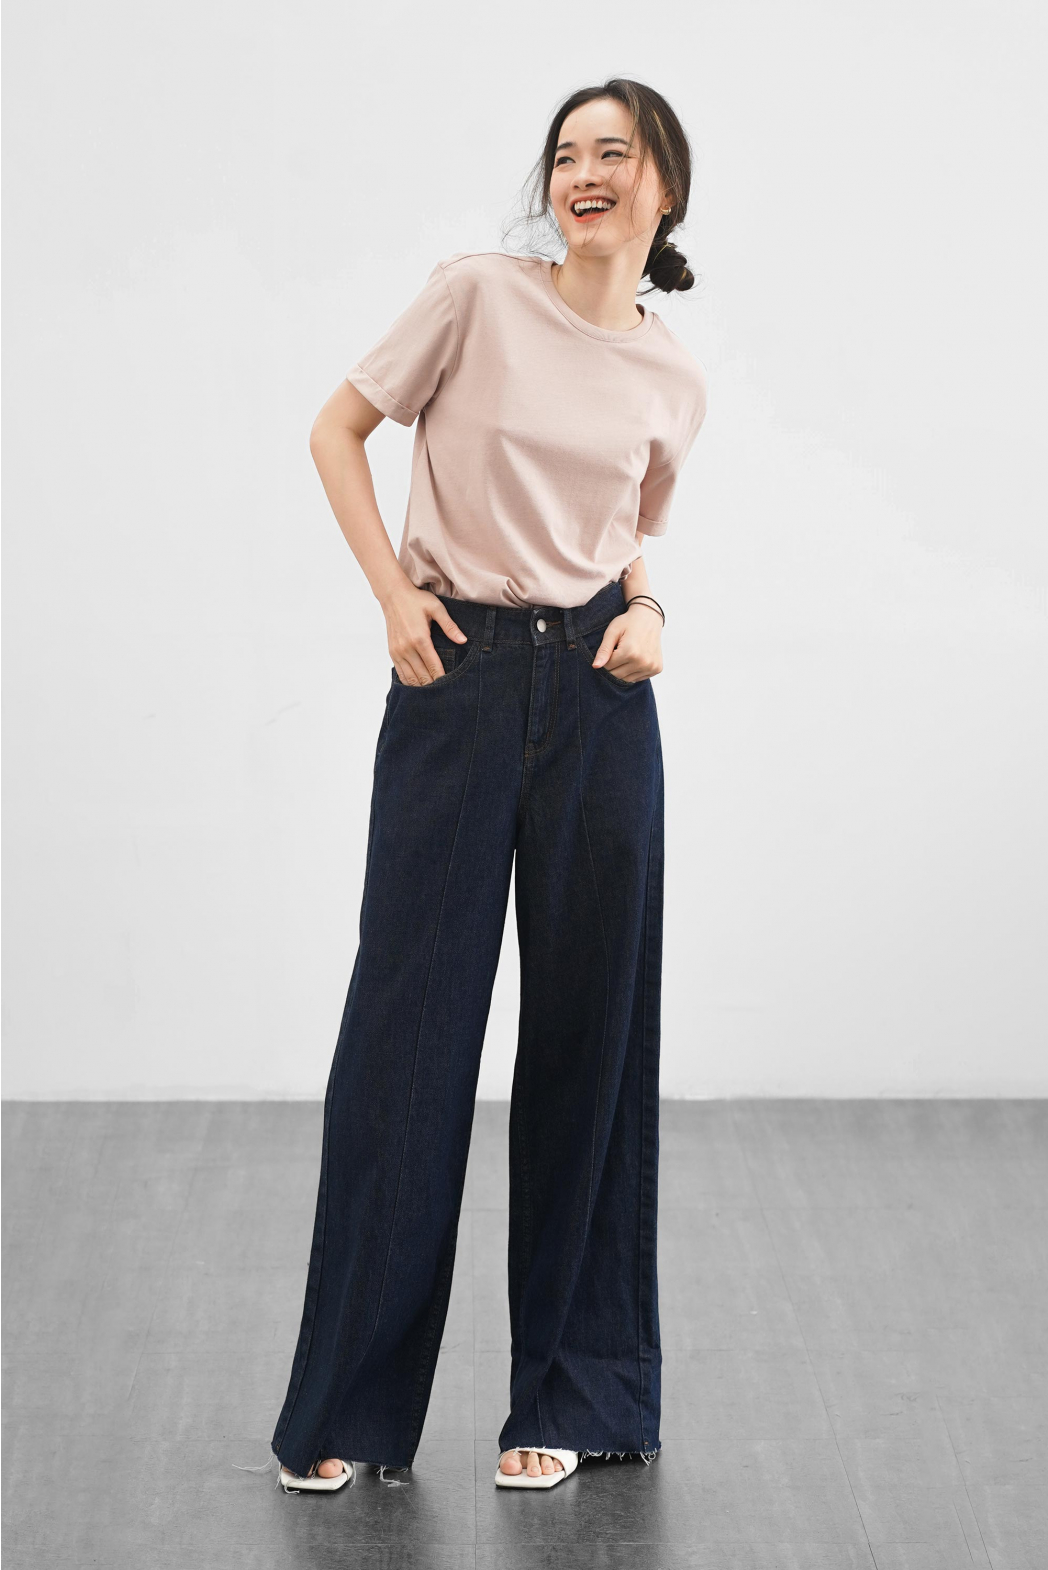 Quần jean nữ. LOOSE form - 10S21DPAW005